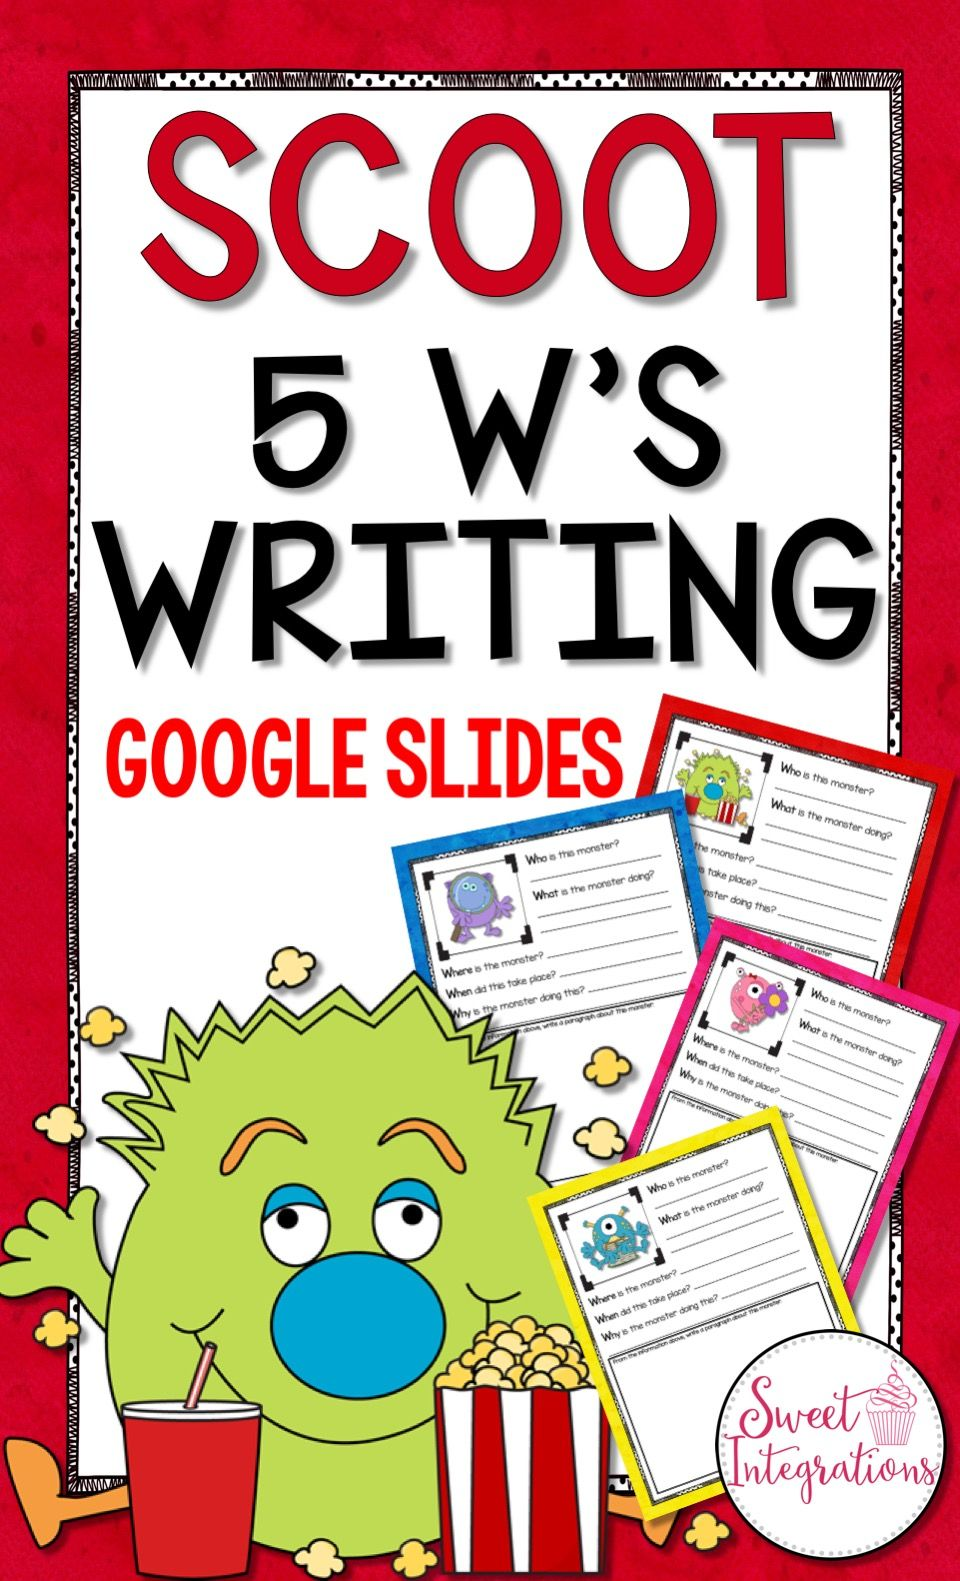 DIGITAL SCOOT WRITING GAME 5 W's Using Google Slides